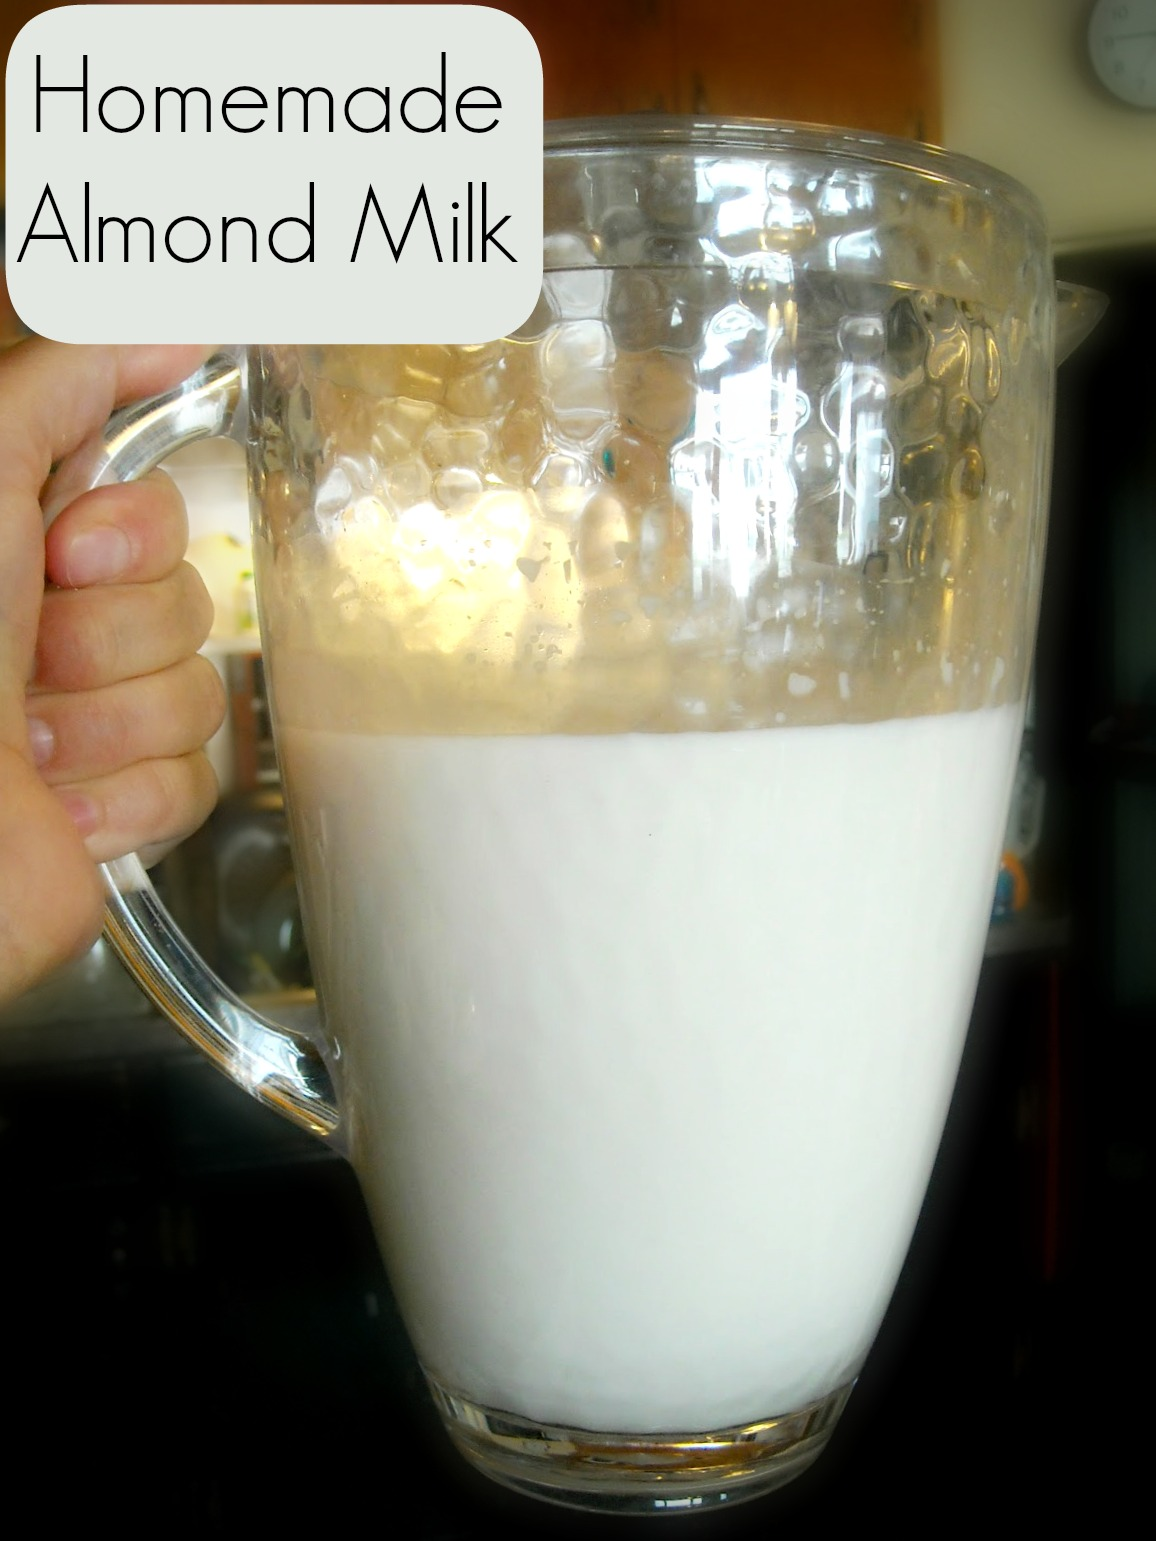 Homemade Almond Milk - The Pistachio Project